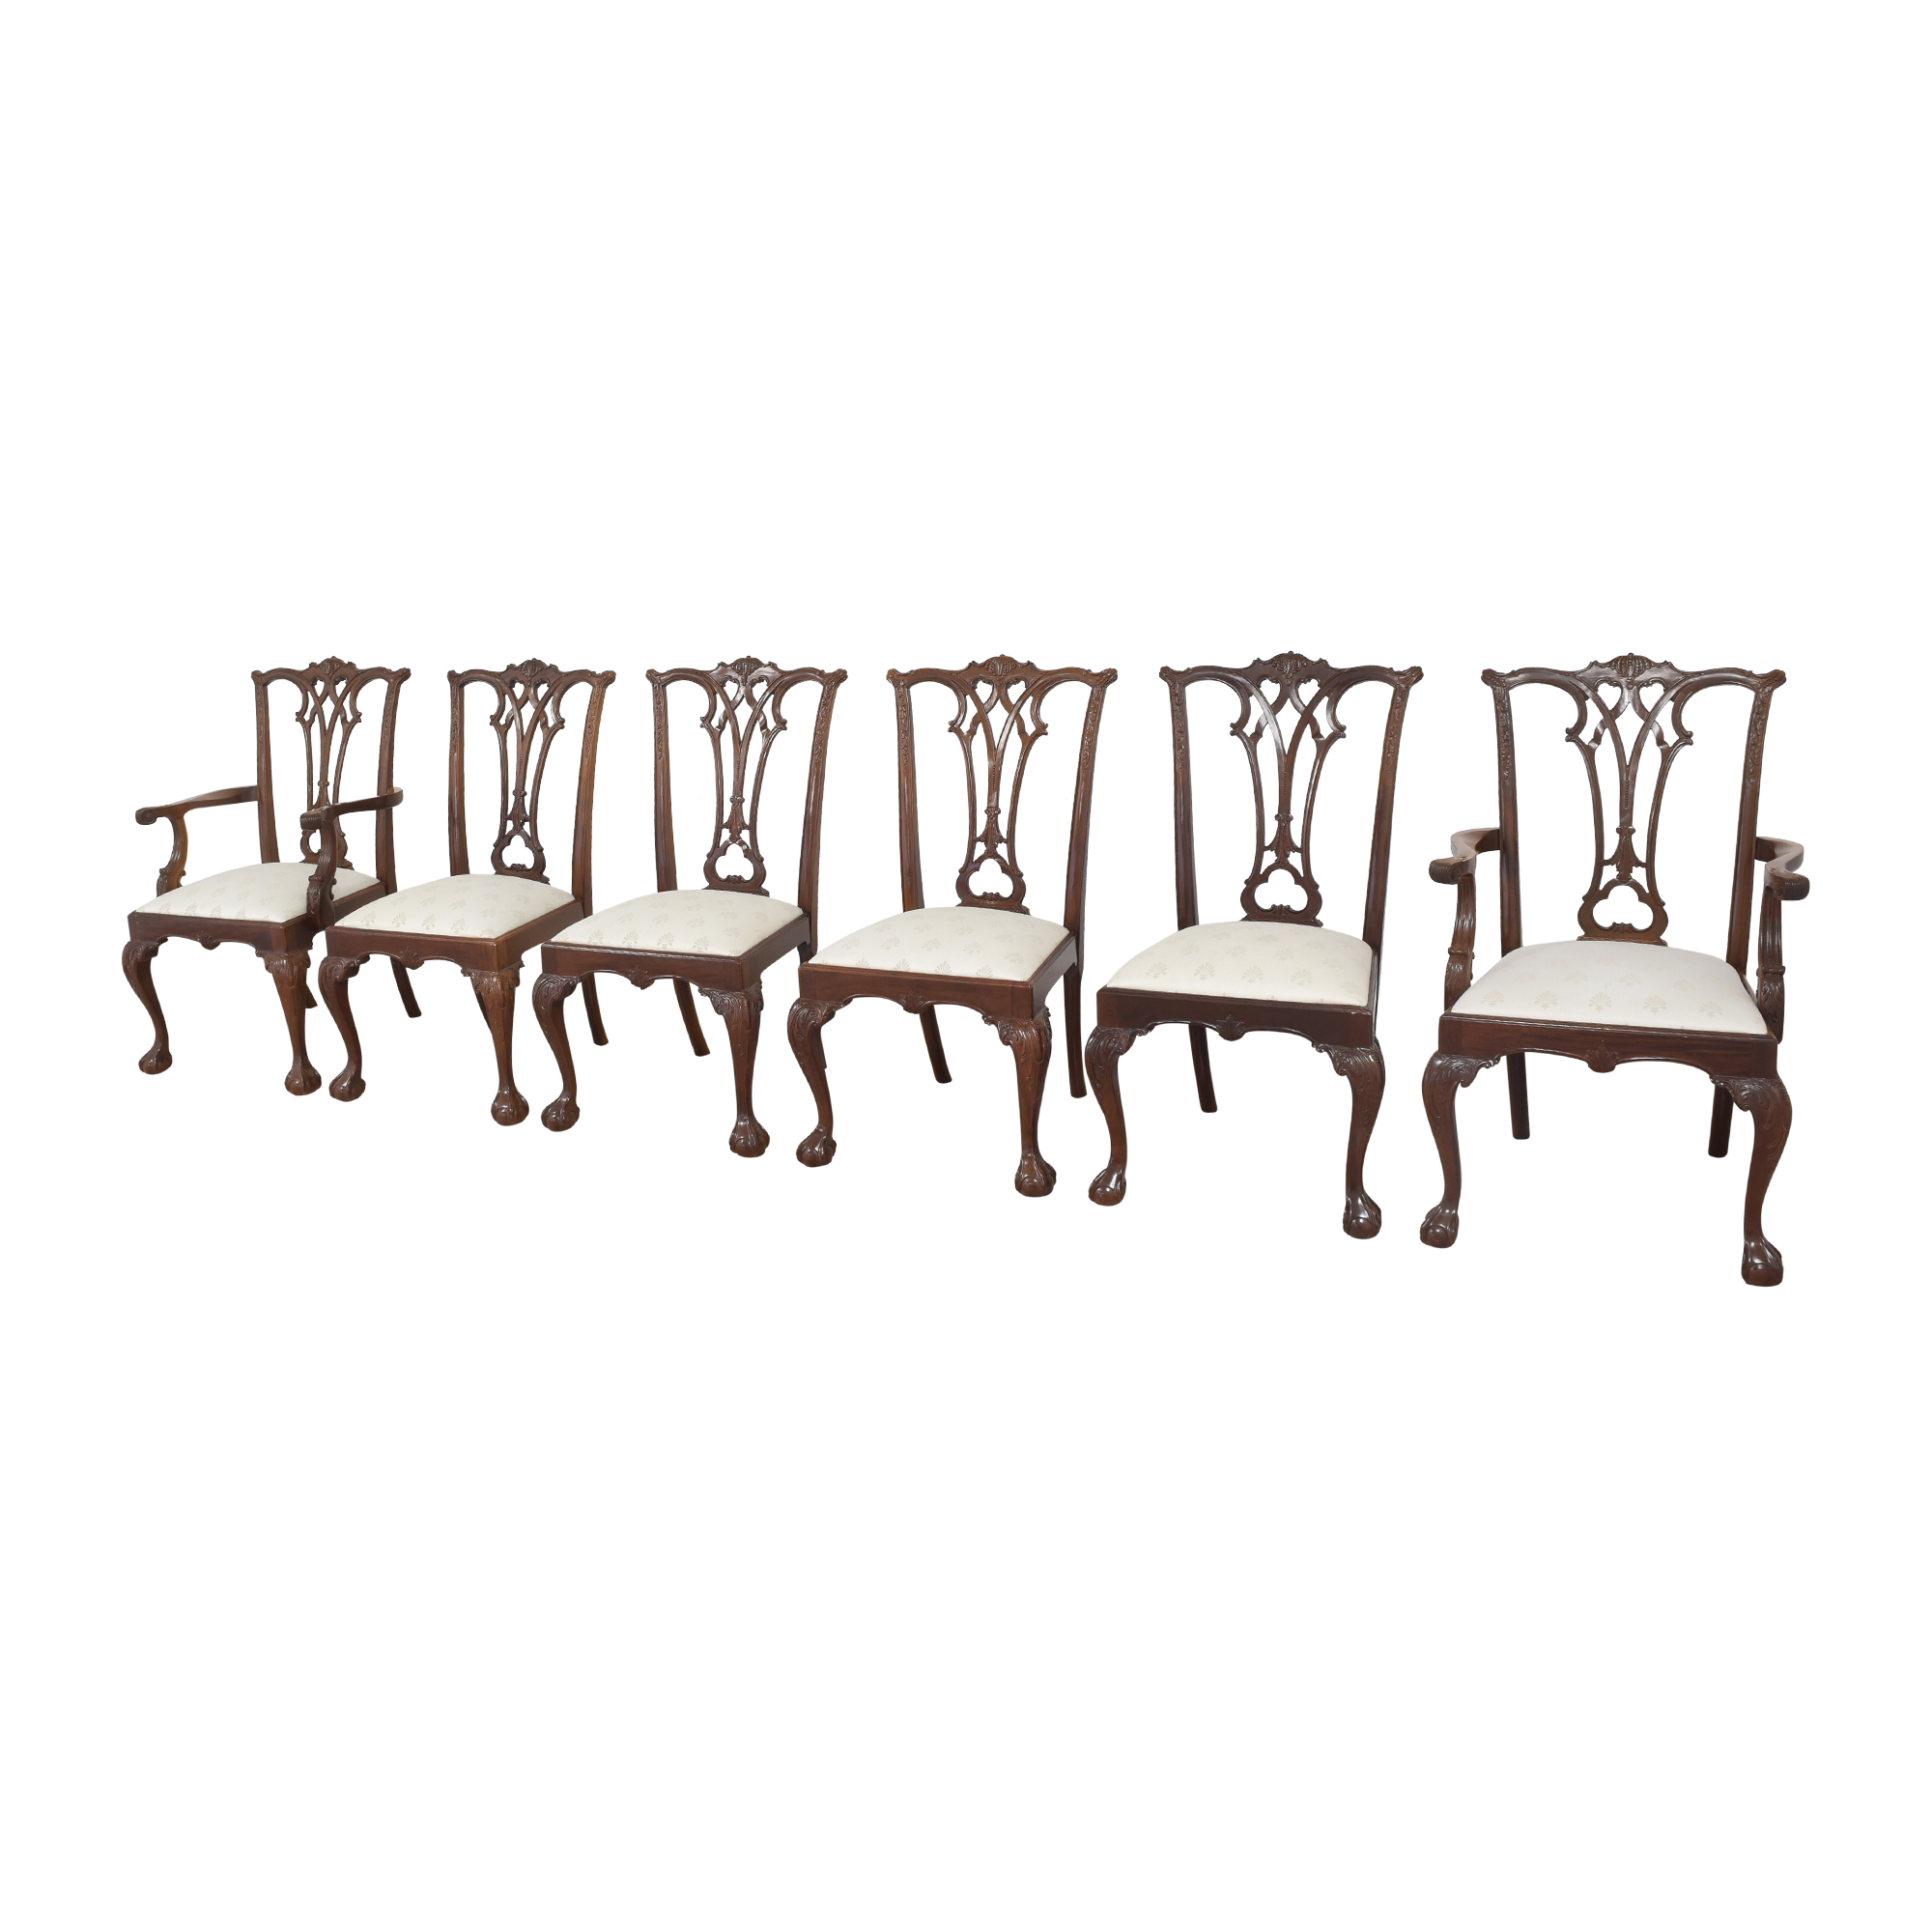 American Drew American Drew Chippendale Dining Chairs nj